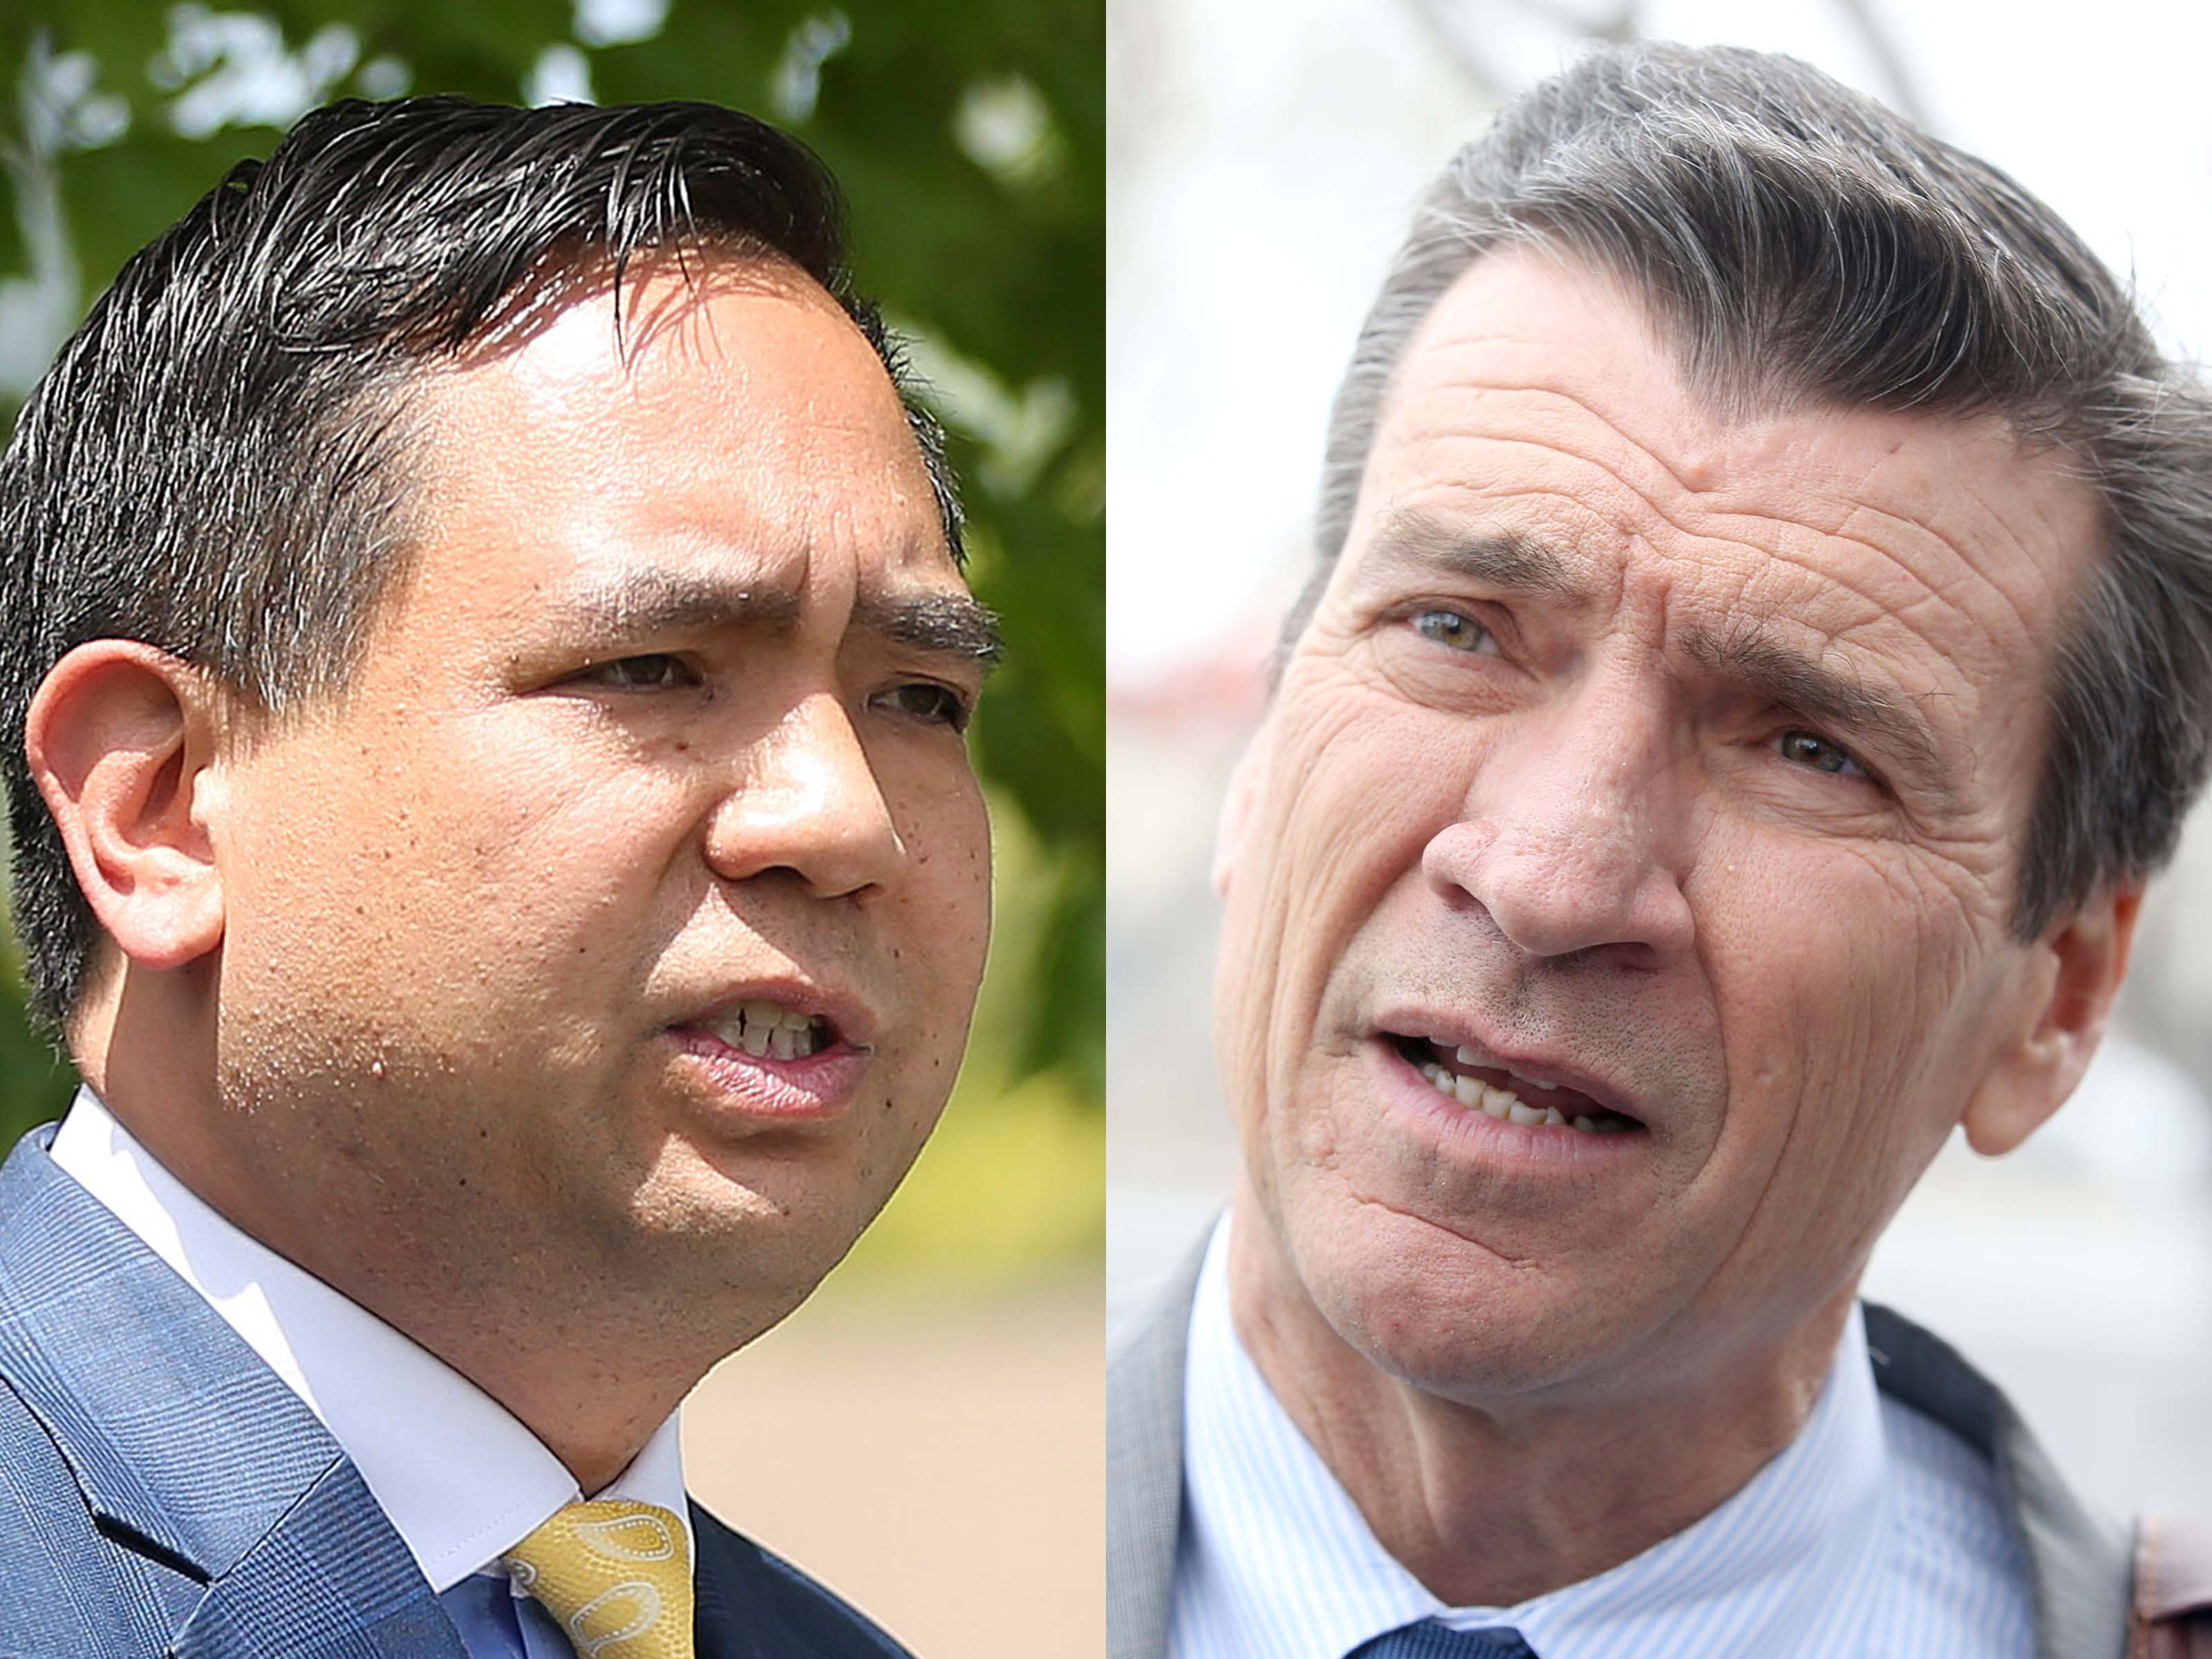 Incumbent Republican Attorney General Sean Reyes, left, and Democrat Greg Skordas, right, are pictured in this composite photo.